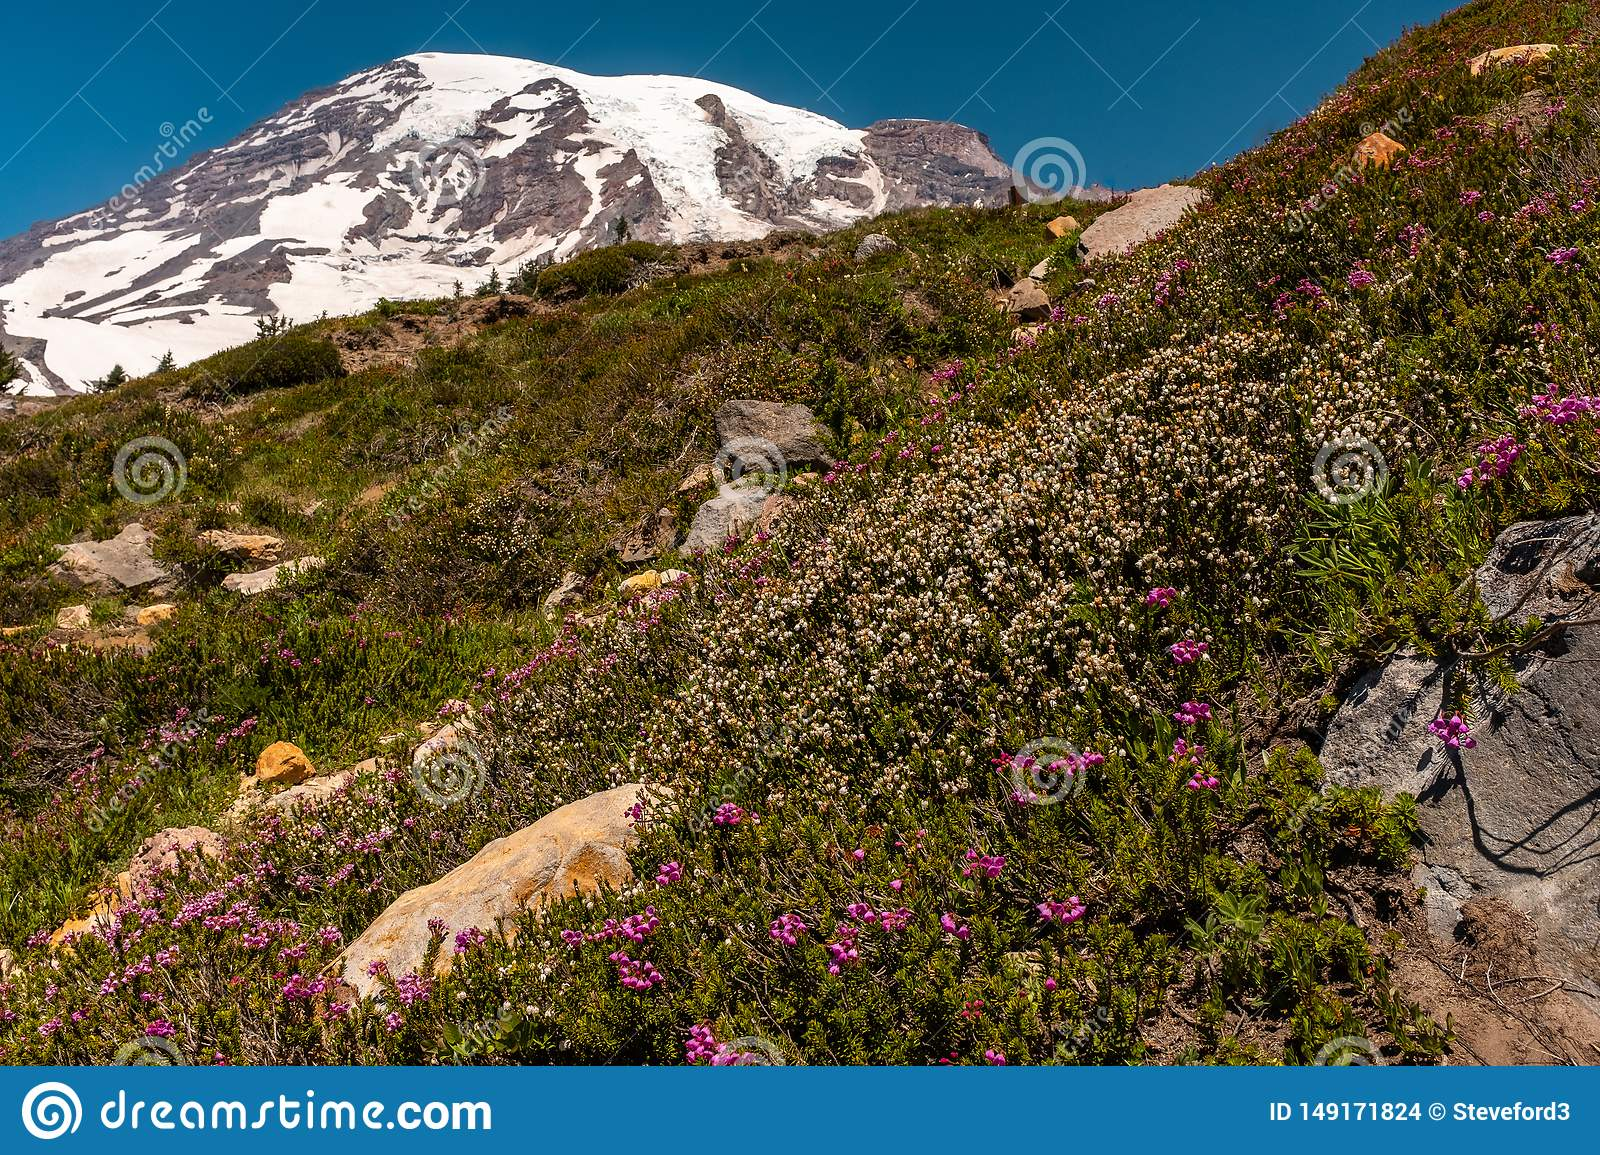 A snow capped mountain, Mount Rainier, at spring time with a field of spring wildflowers in the foreground